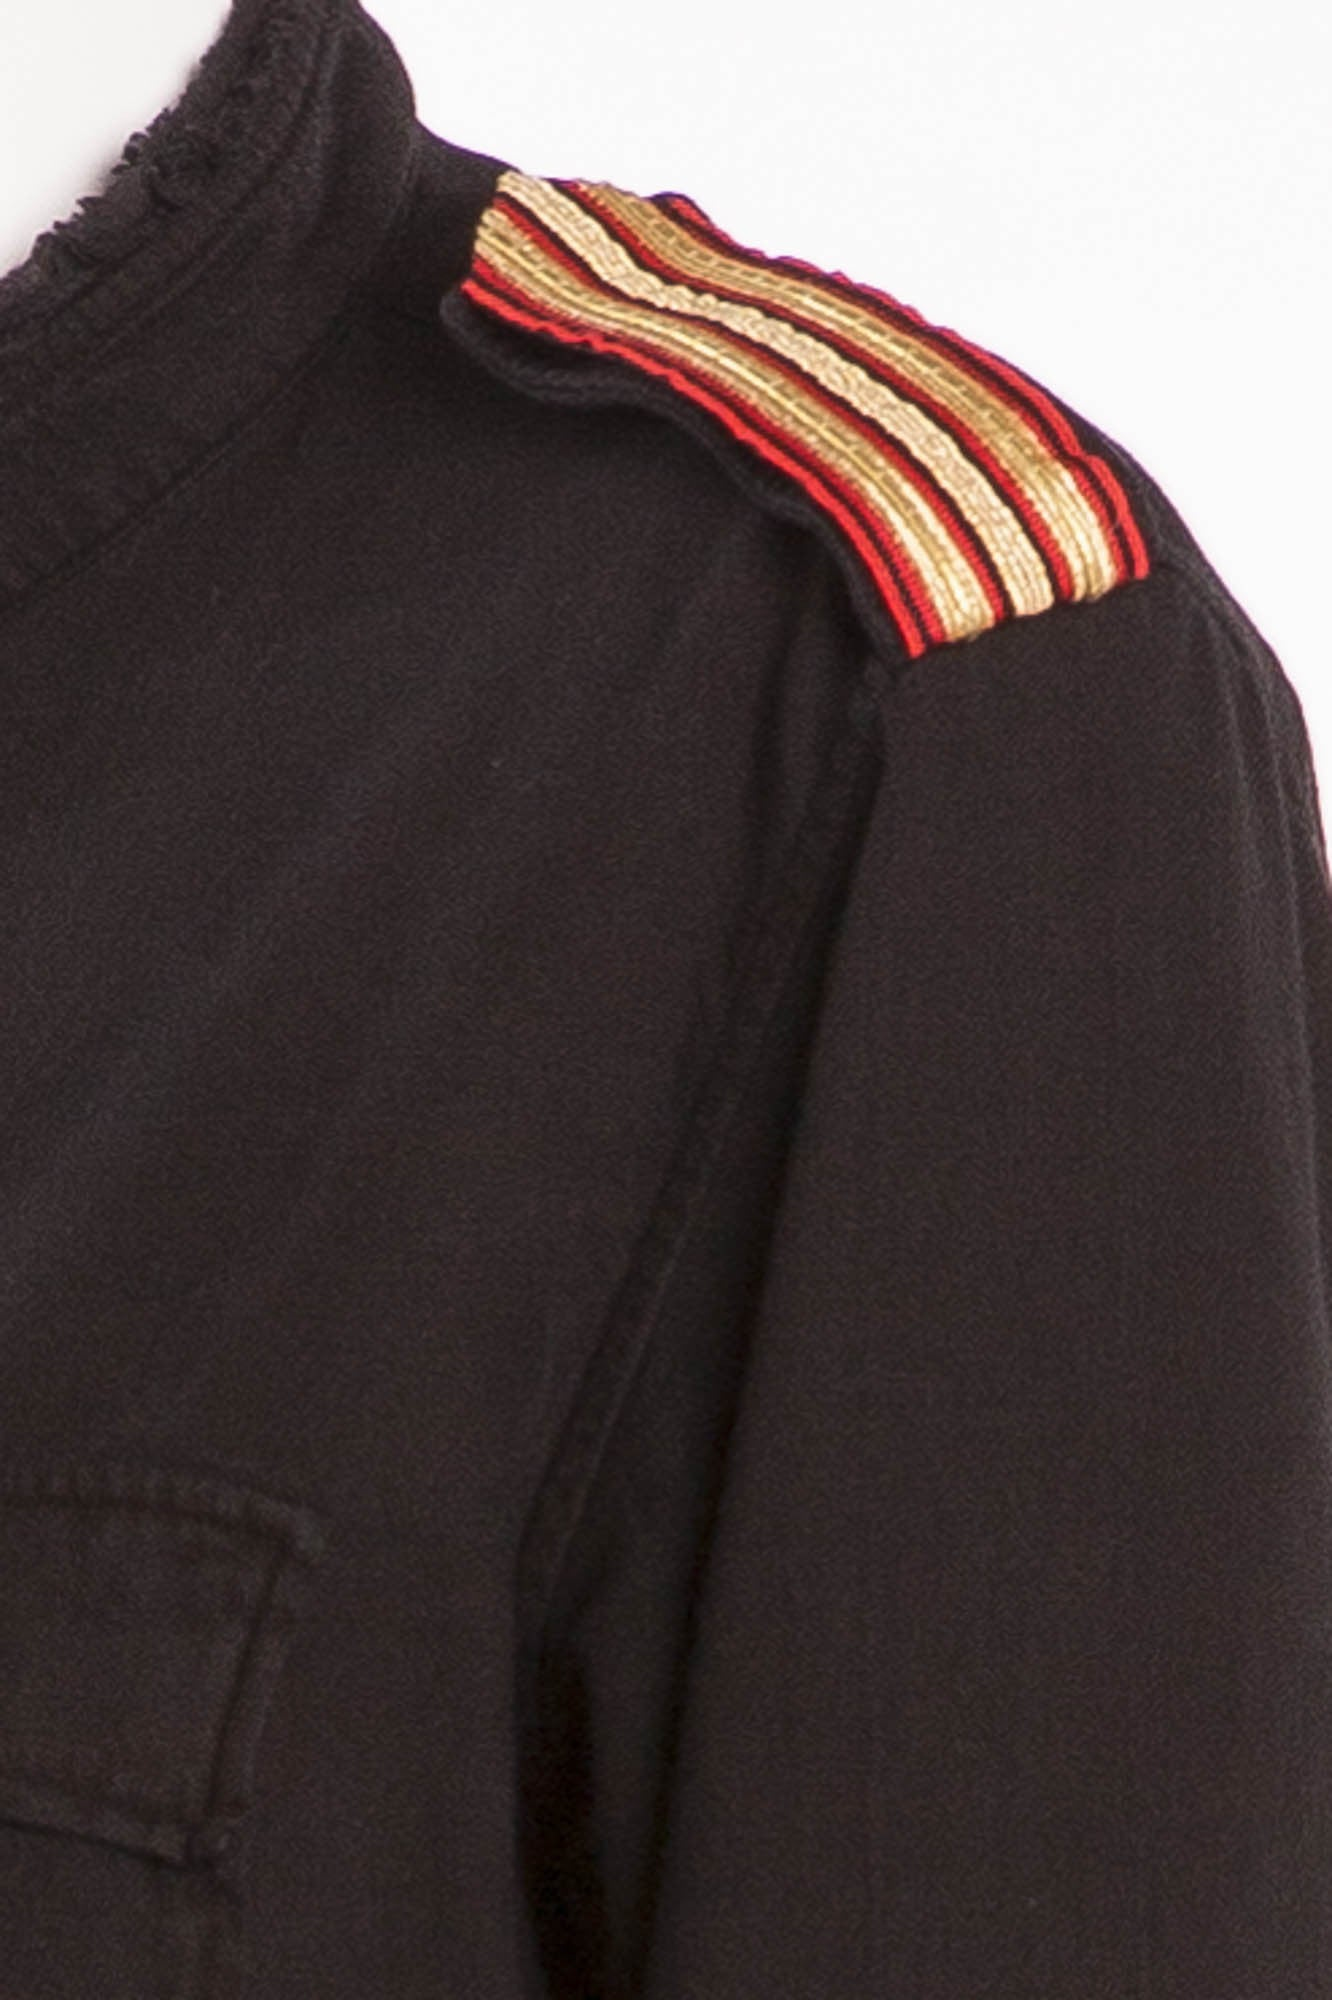 b0b4f974ede1d2 Balmain - Black Button Down Red and Gold Trimmed Shoulders - FR 40 ...